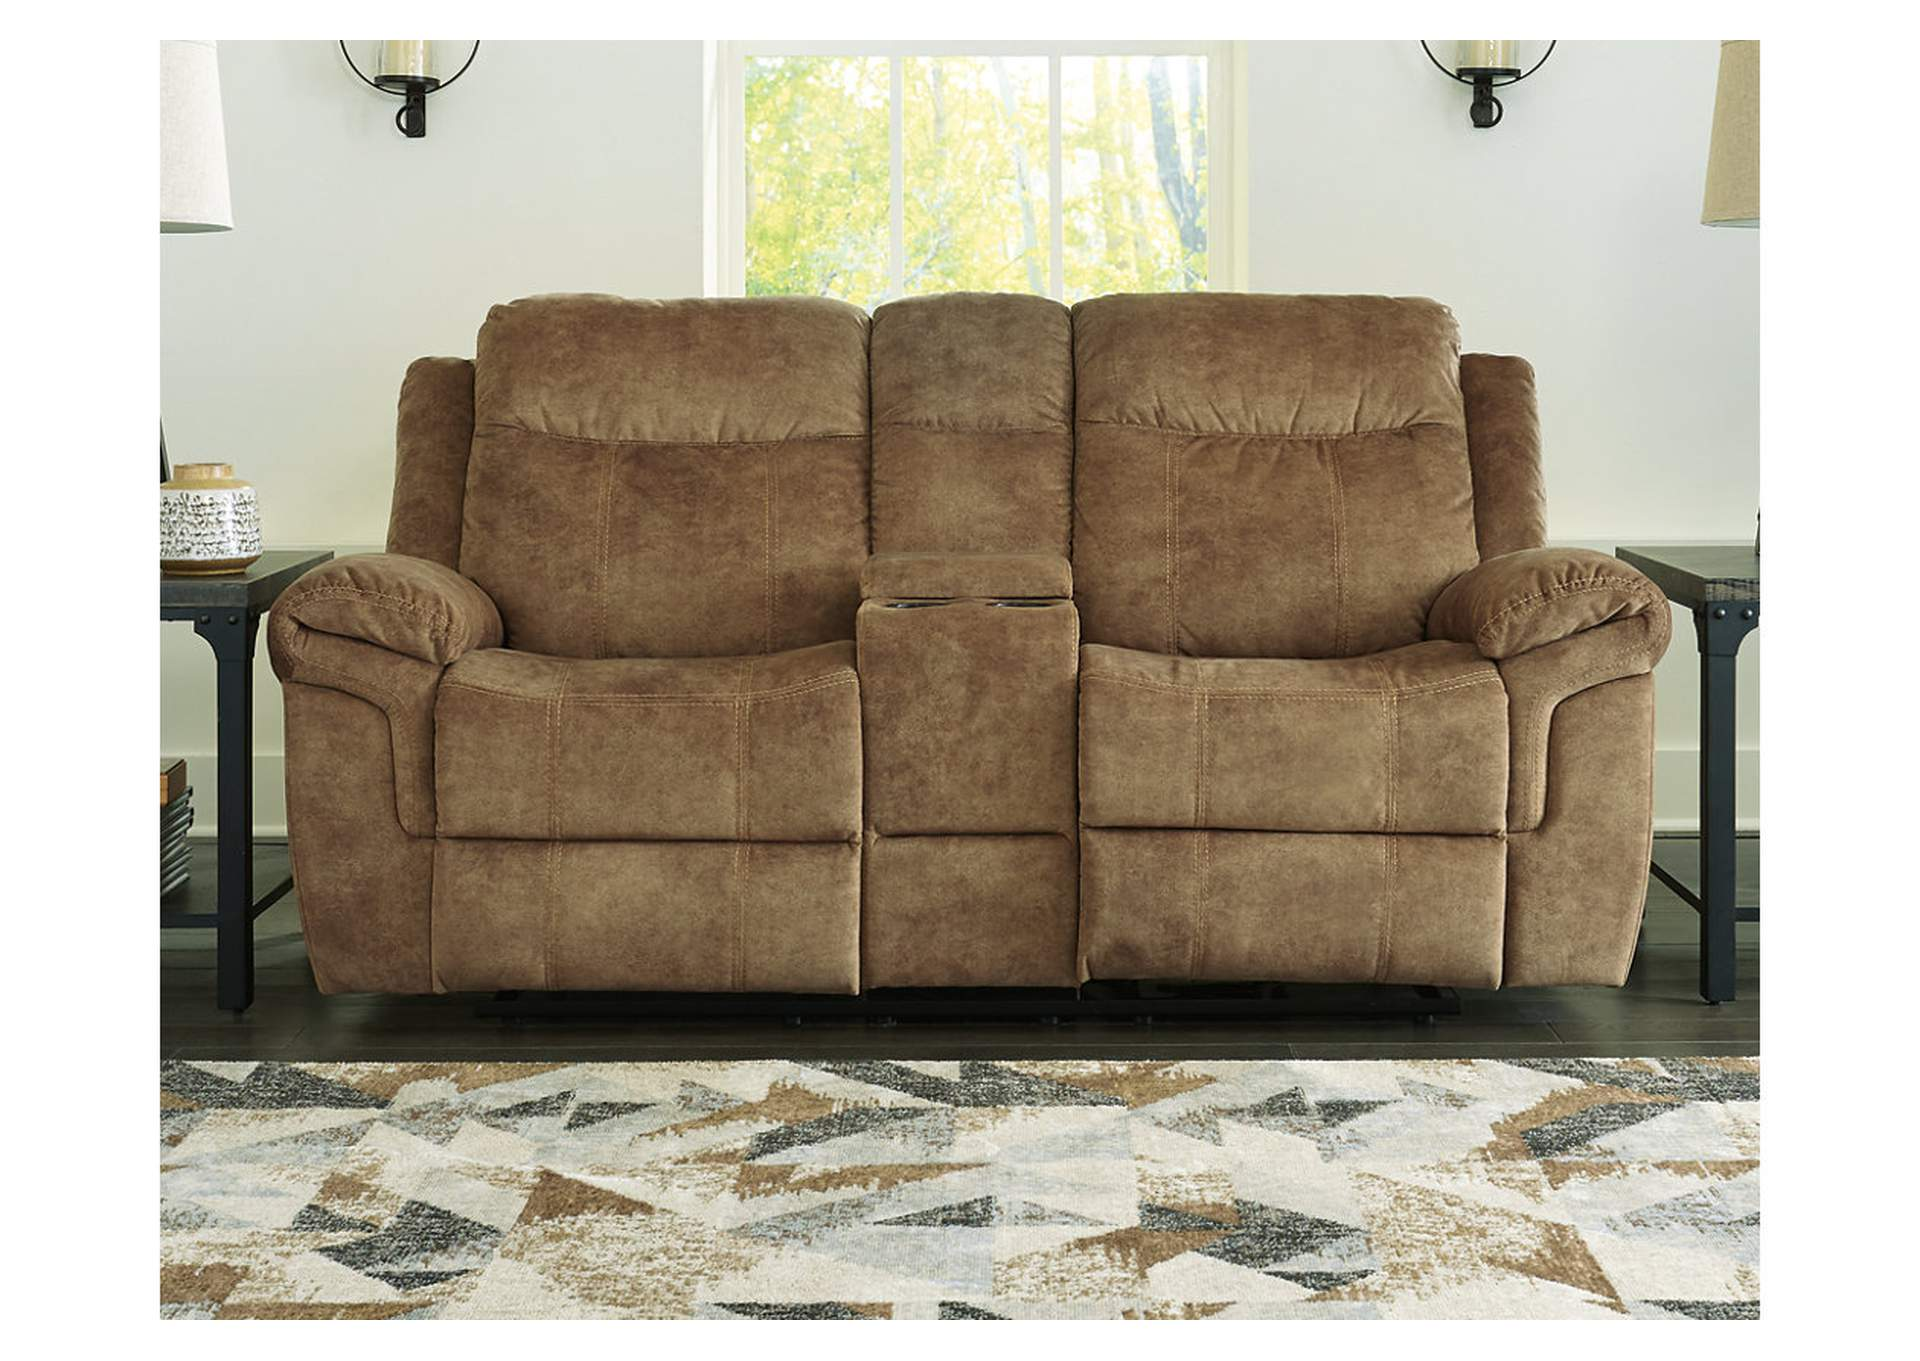 Huddle-Up Nutmeg Reclining Loveseat with Console,Signature Design By Ashley